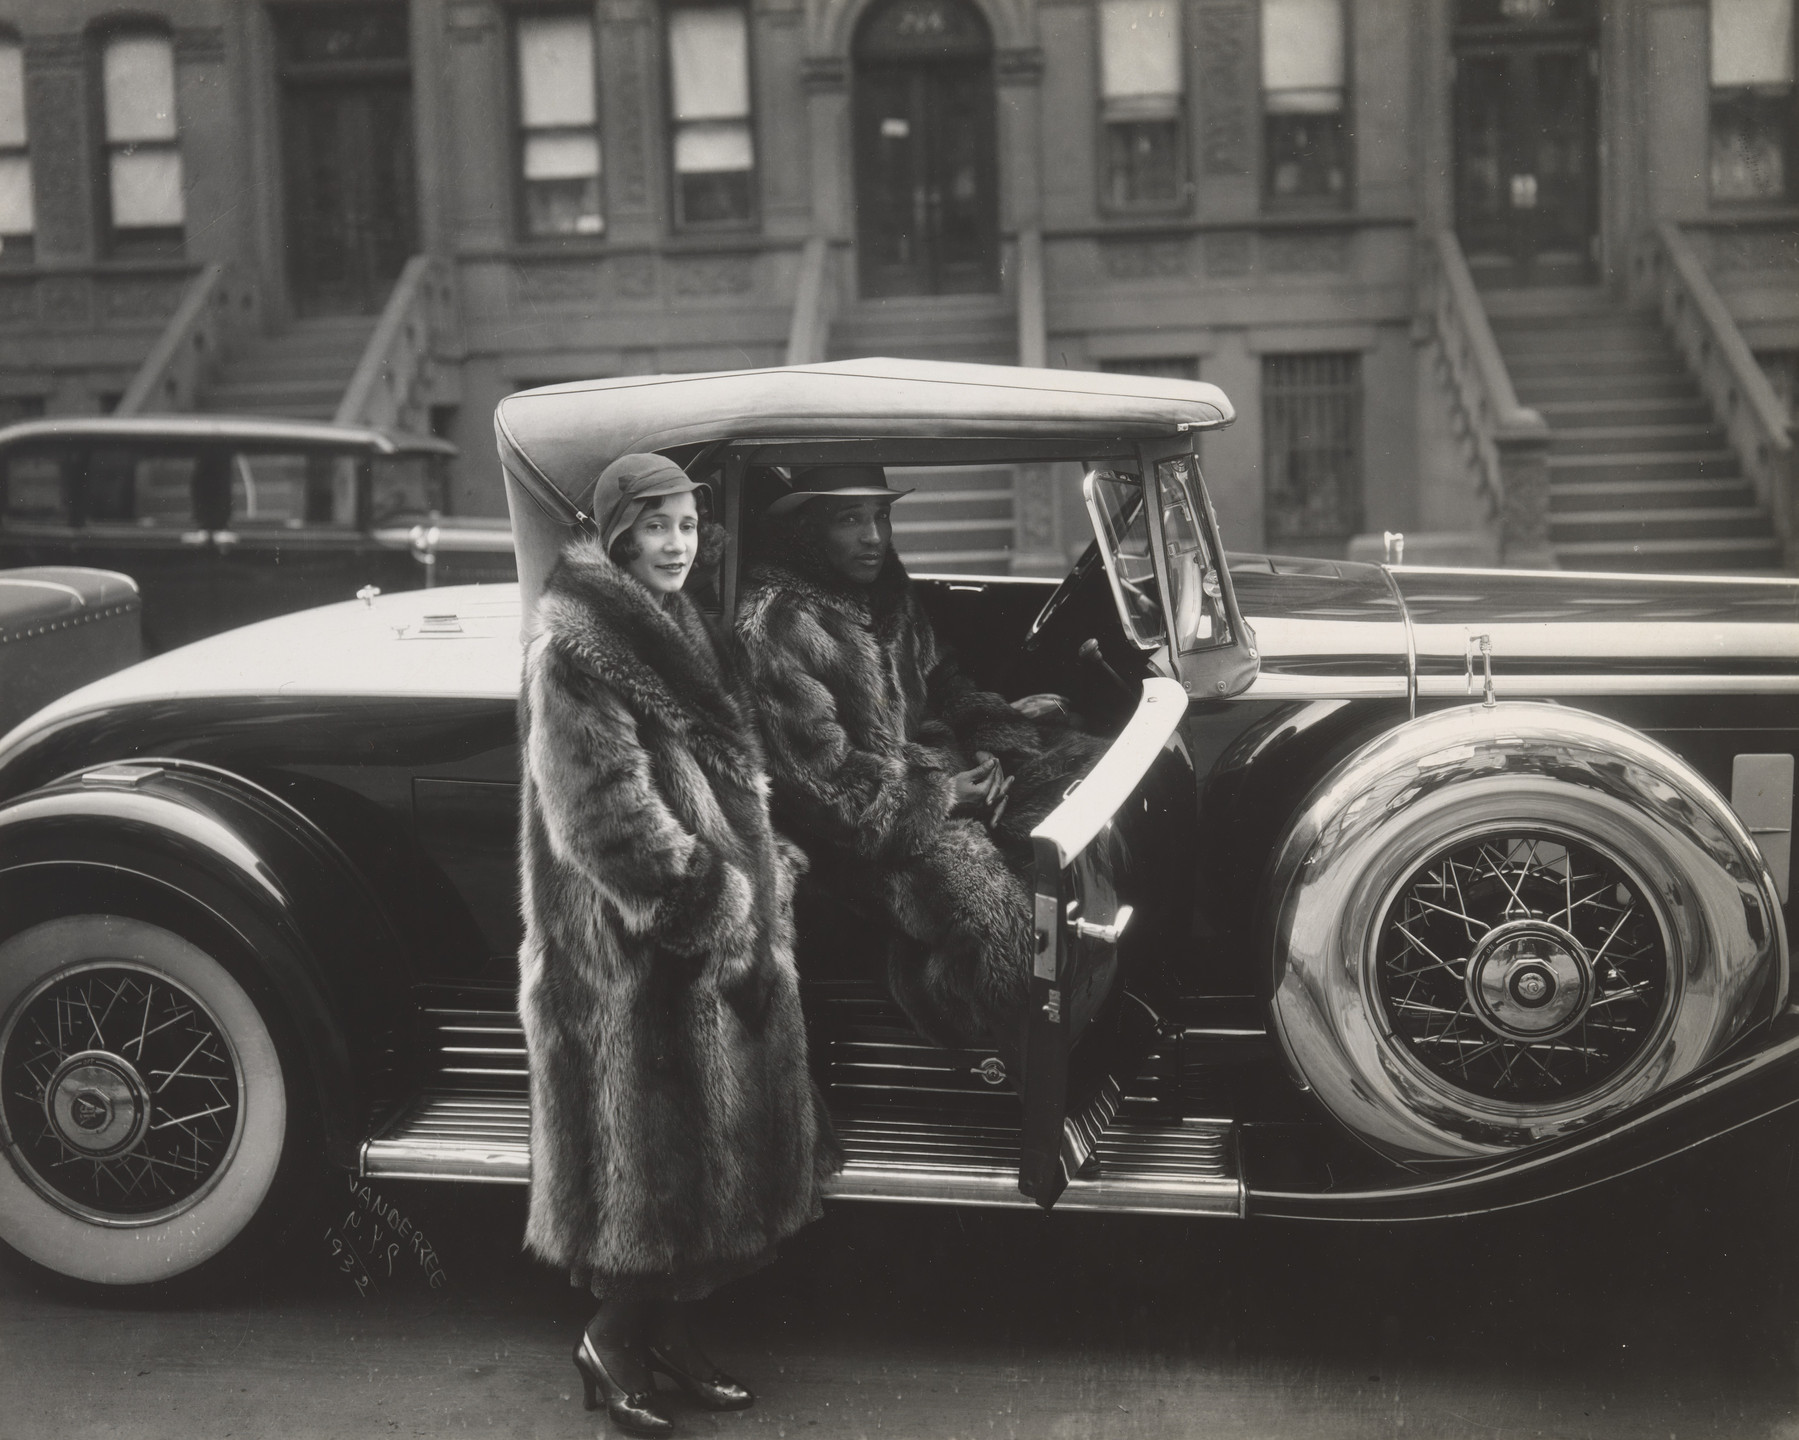 James Van Der Zee. Couple, Harlem. 1932